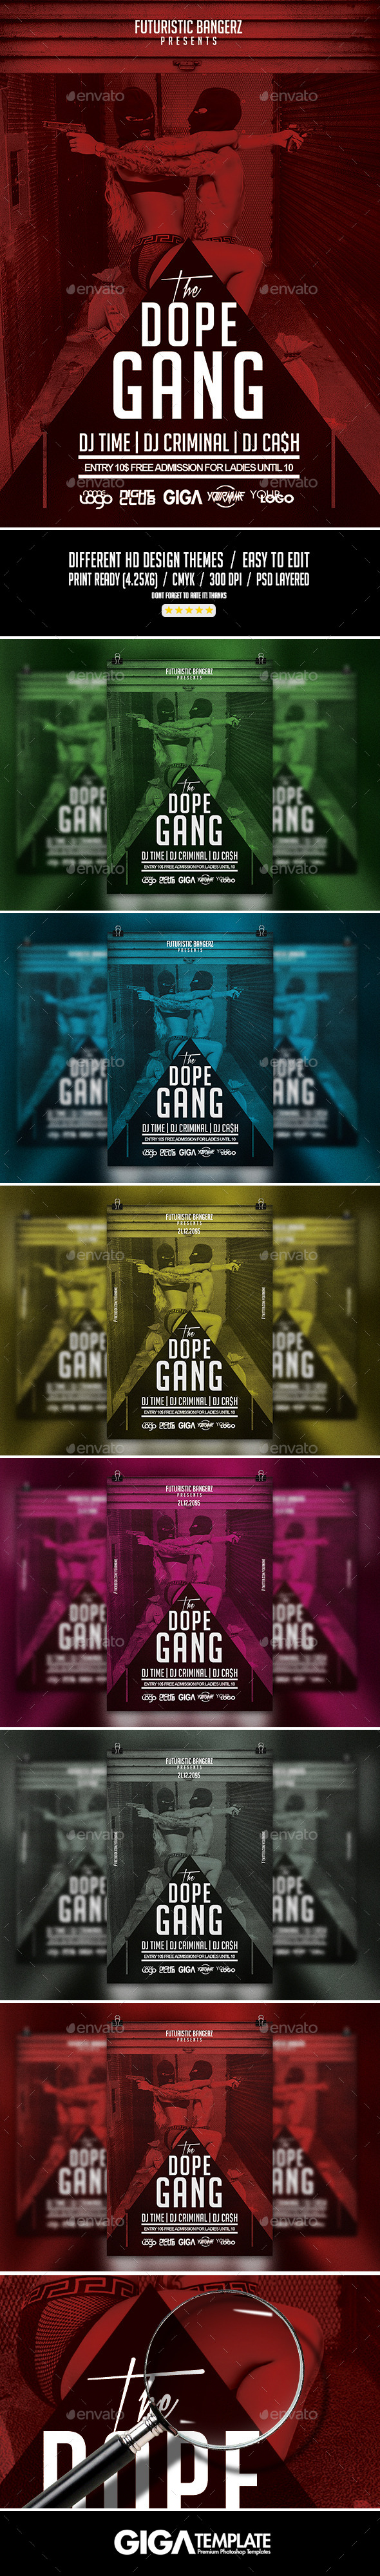 The Dope Gang | Hip-Hop Modern Flyer PSD Template - Events Flyers